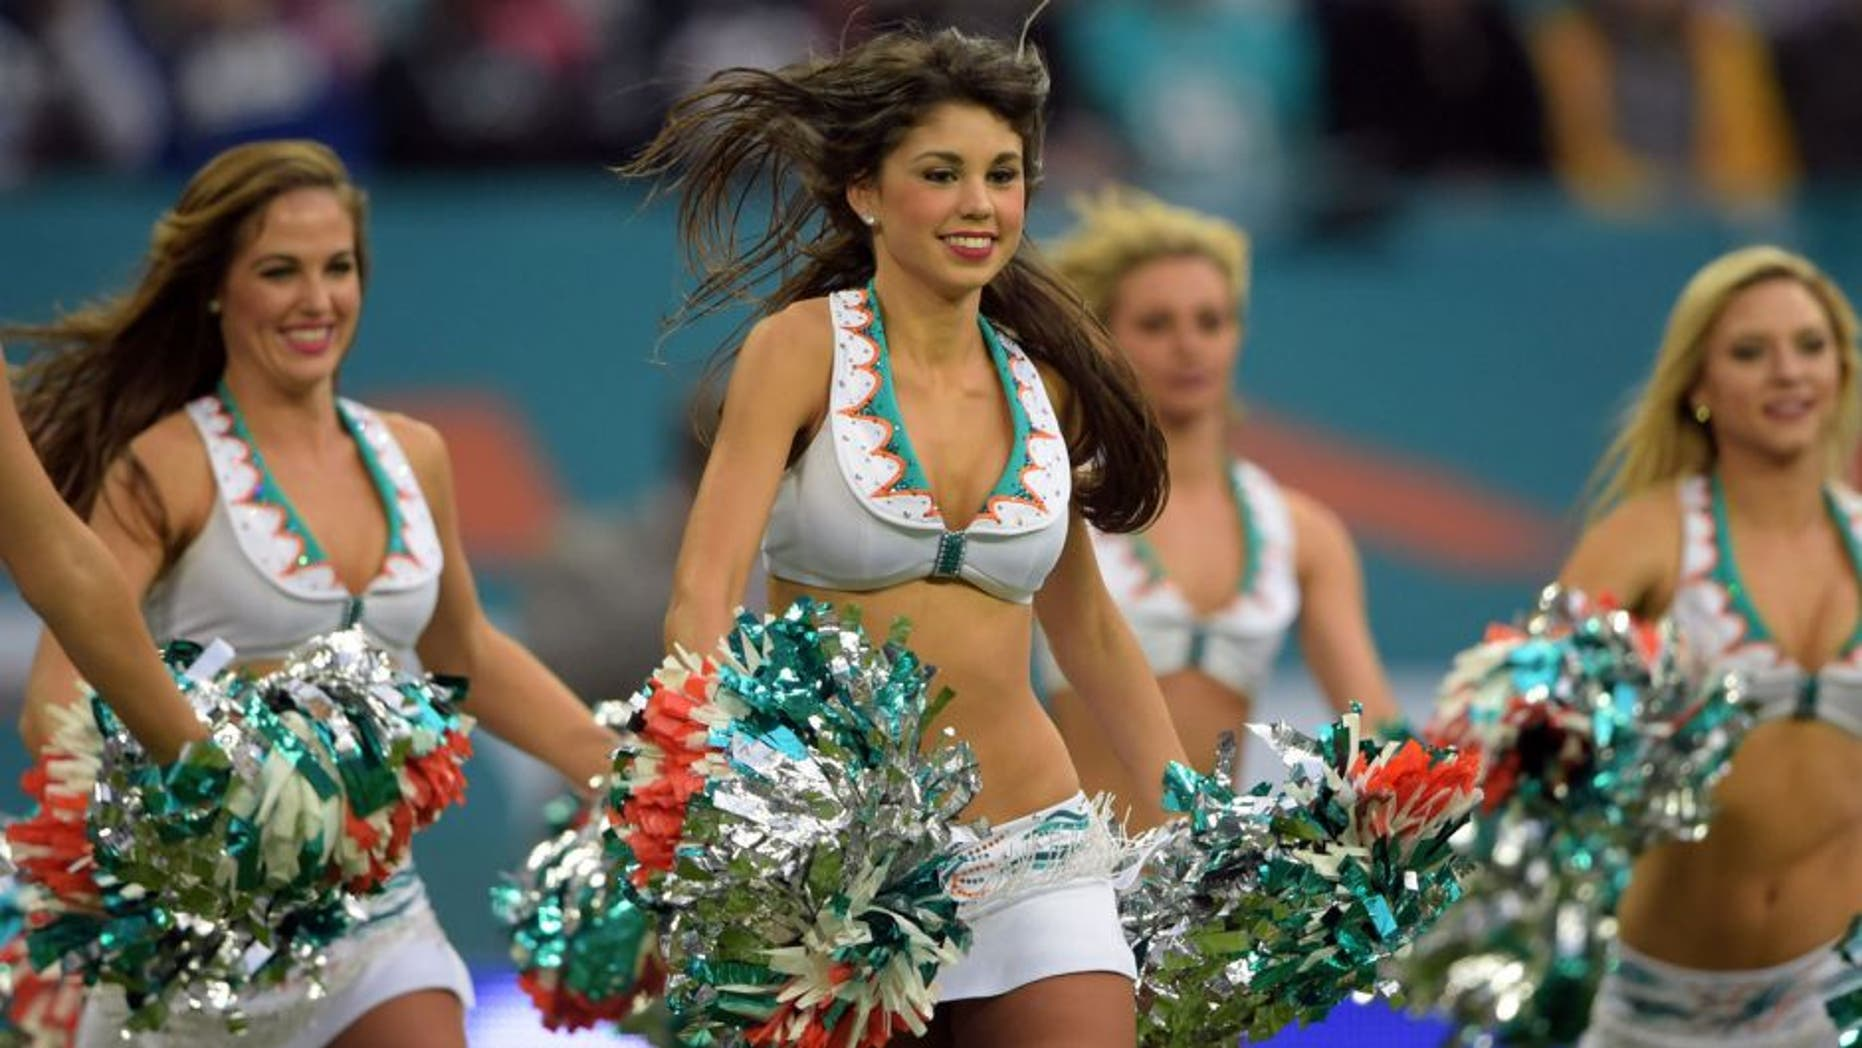 Oct 4, 2015; London, United Kingdom; Miami Dolphins cheerleaders perform during Game 12 of the NFL International Series against the New York Jets at Wembley Stadium. Mandatory Credit: Kirby Lee-USA TODAY Sports